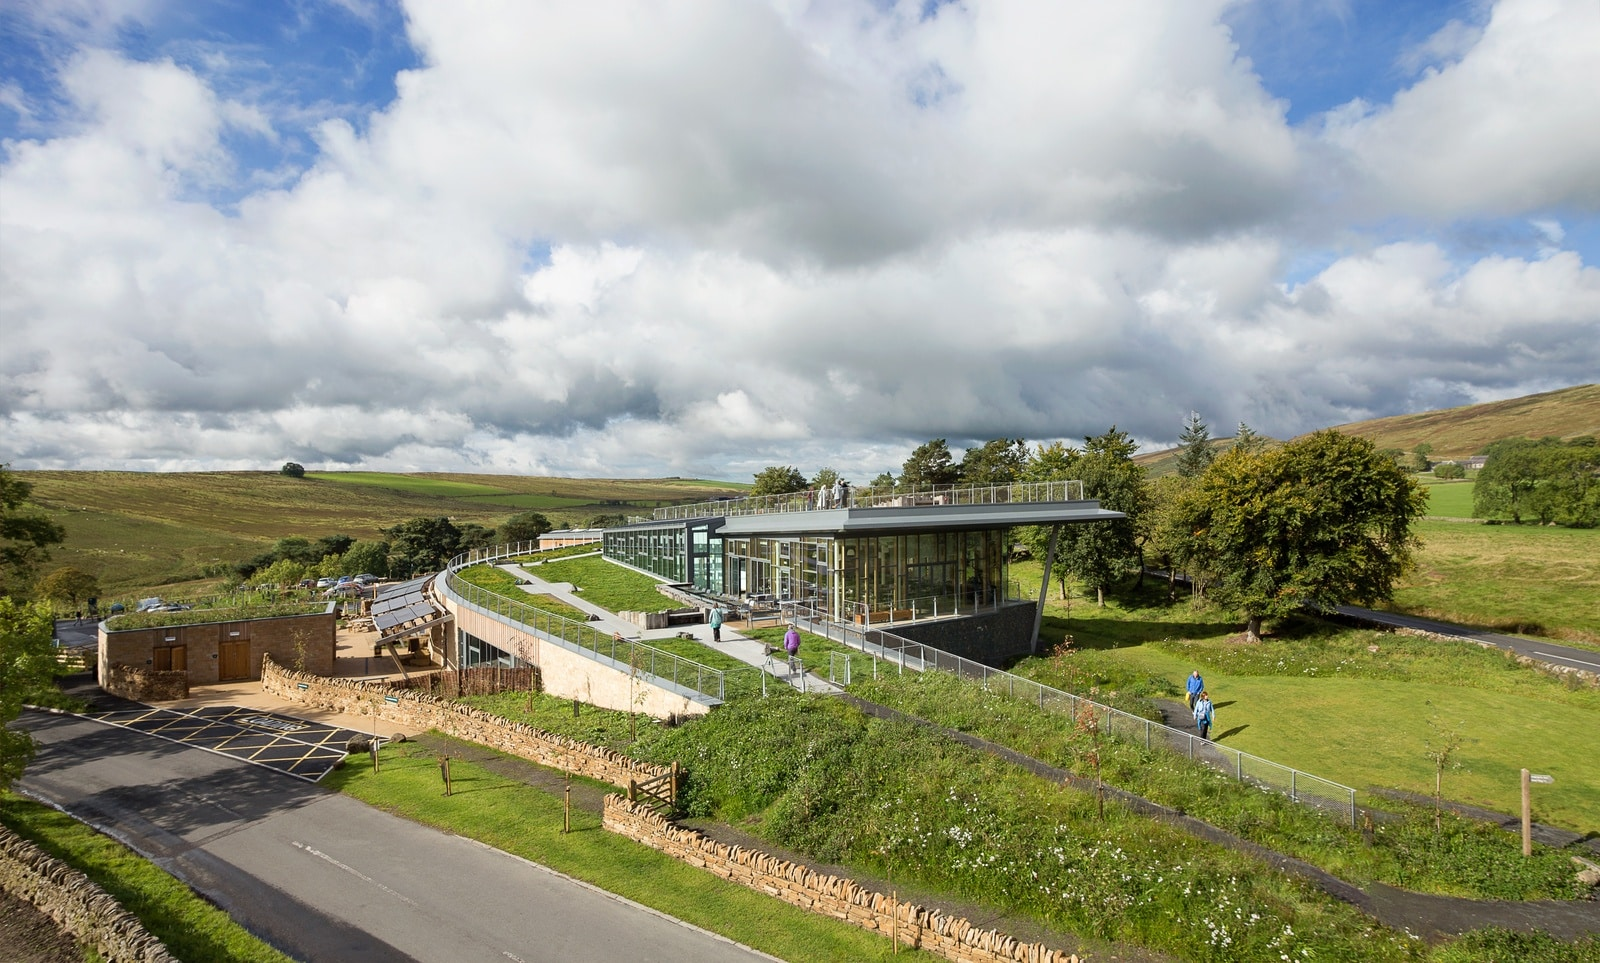 The Sill National Landscape Discovery Centre Building